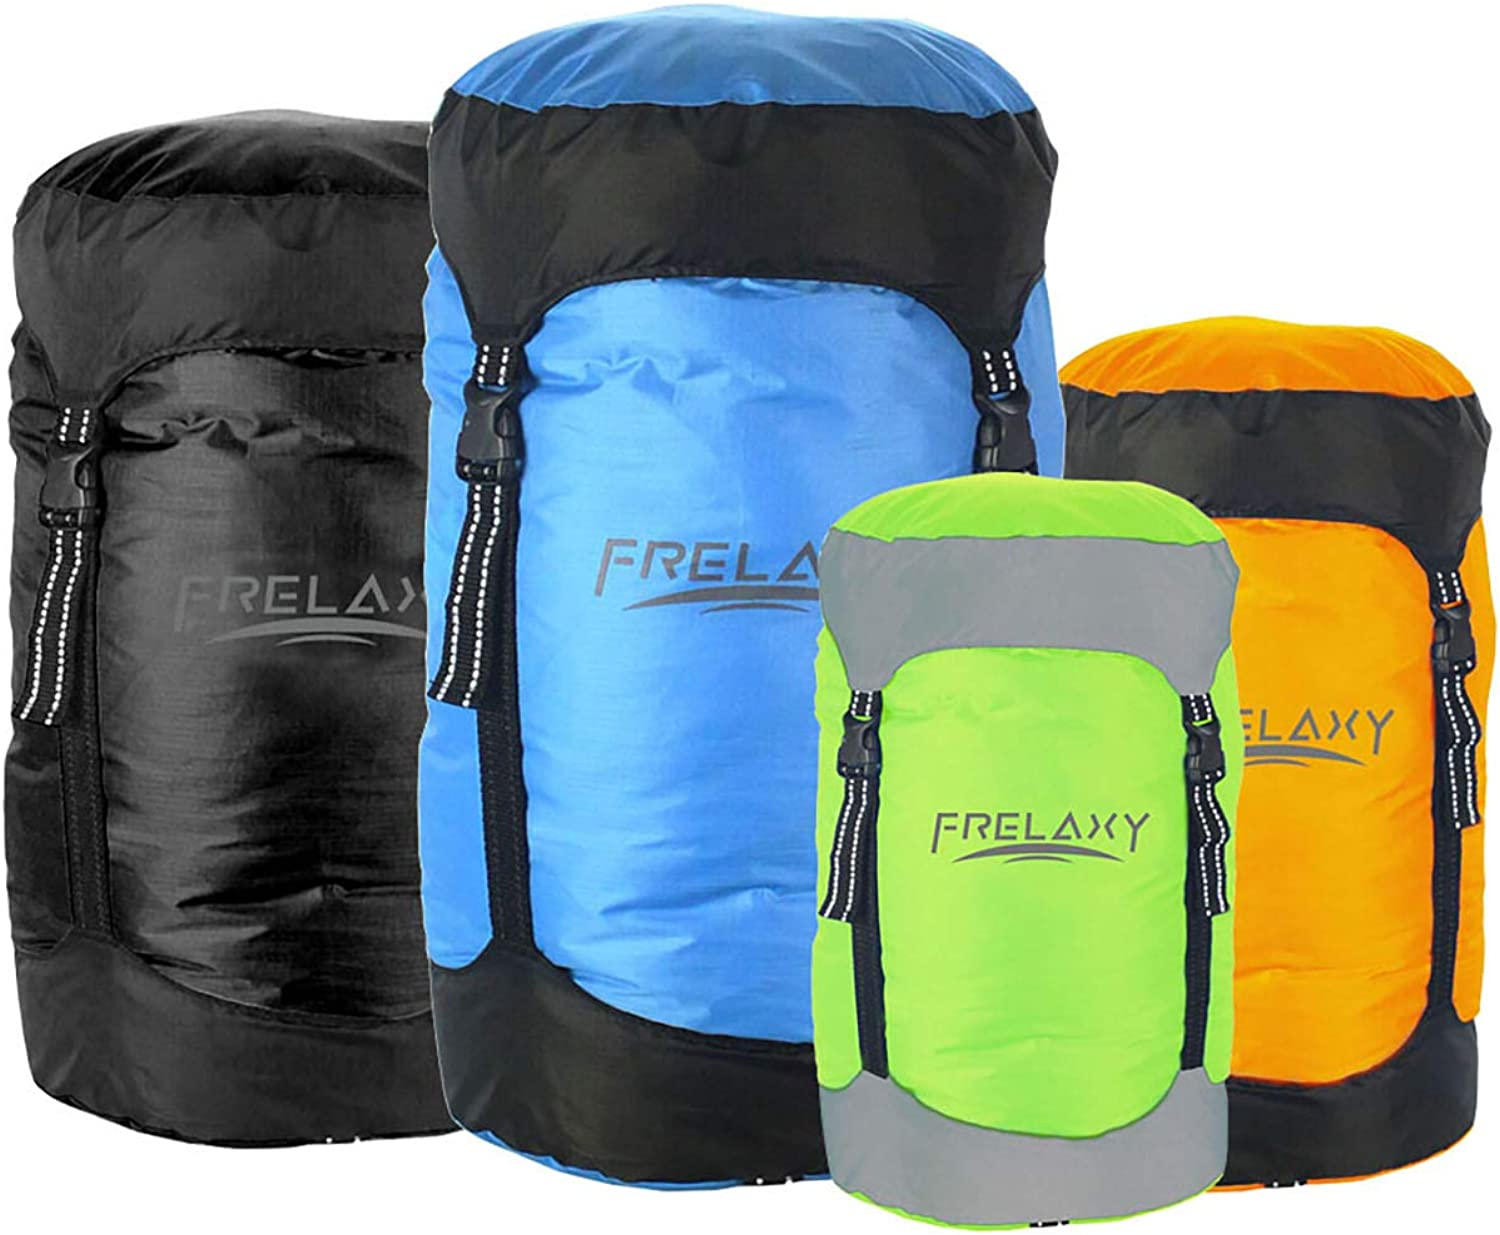 Outdoor Compression Sack Sleeping Bag Home Wide Use Camping Clothing Storage